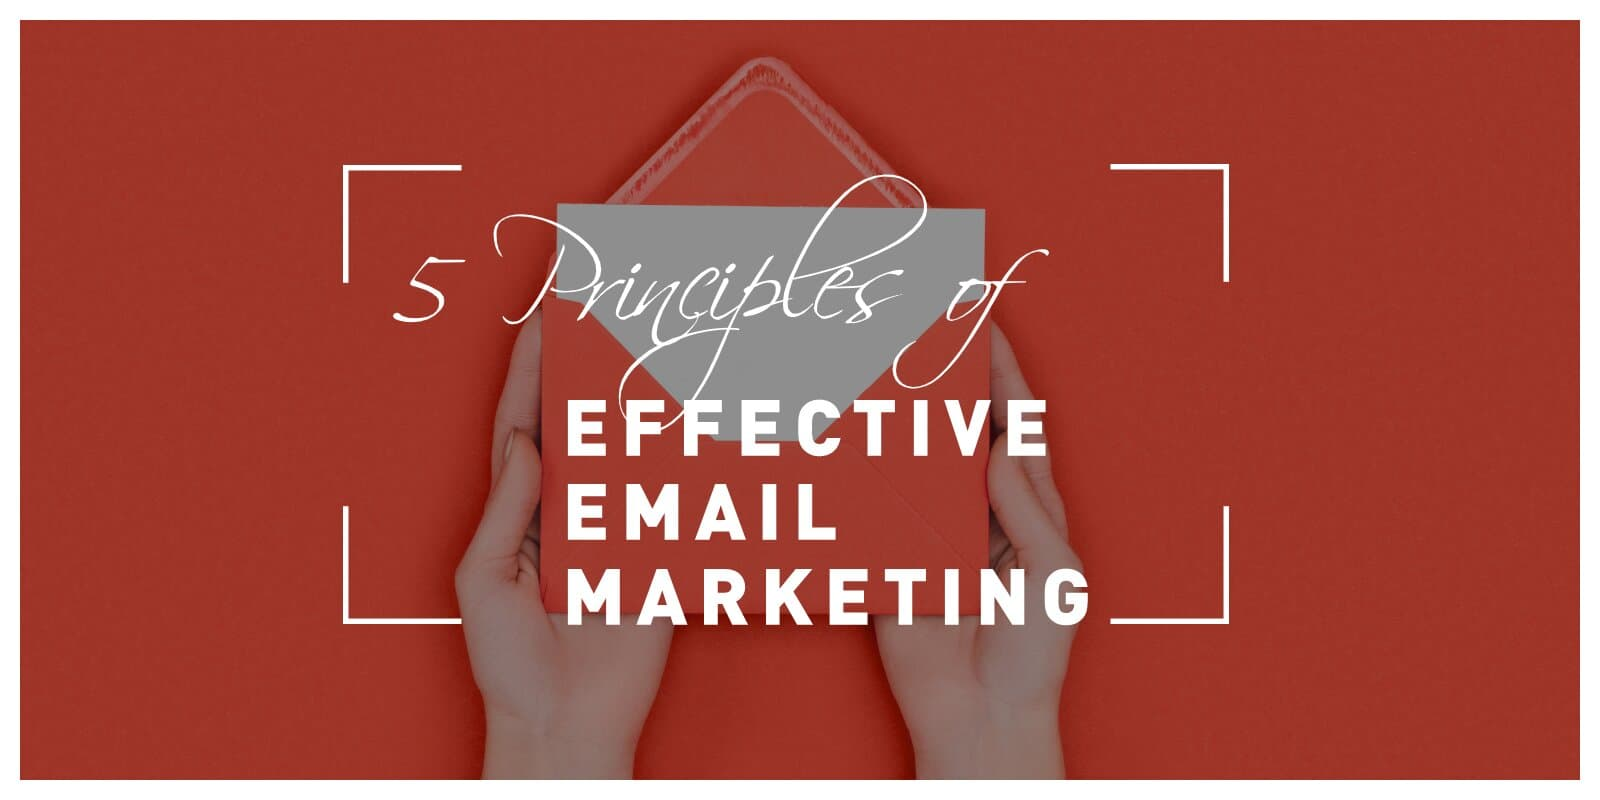 5 Principles of Effective Email Marketing: Know How to Send the Right Message at the Right Time